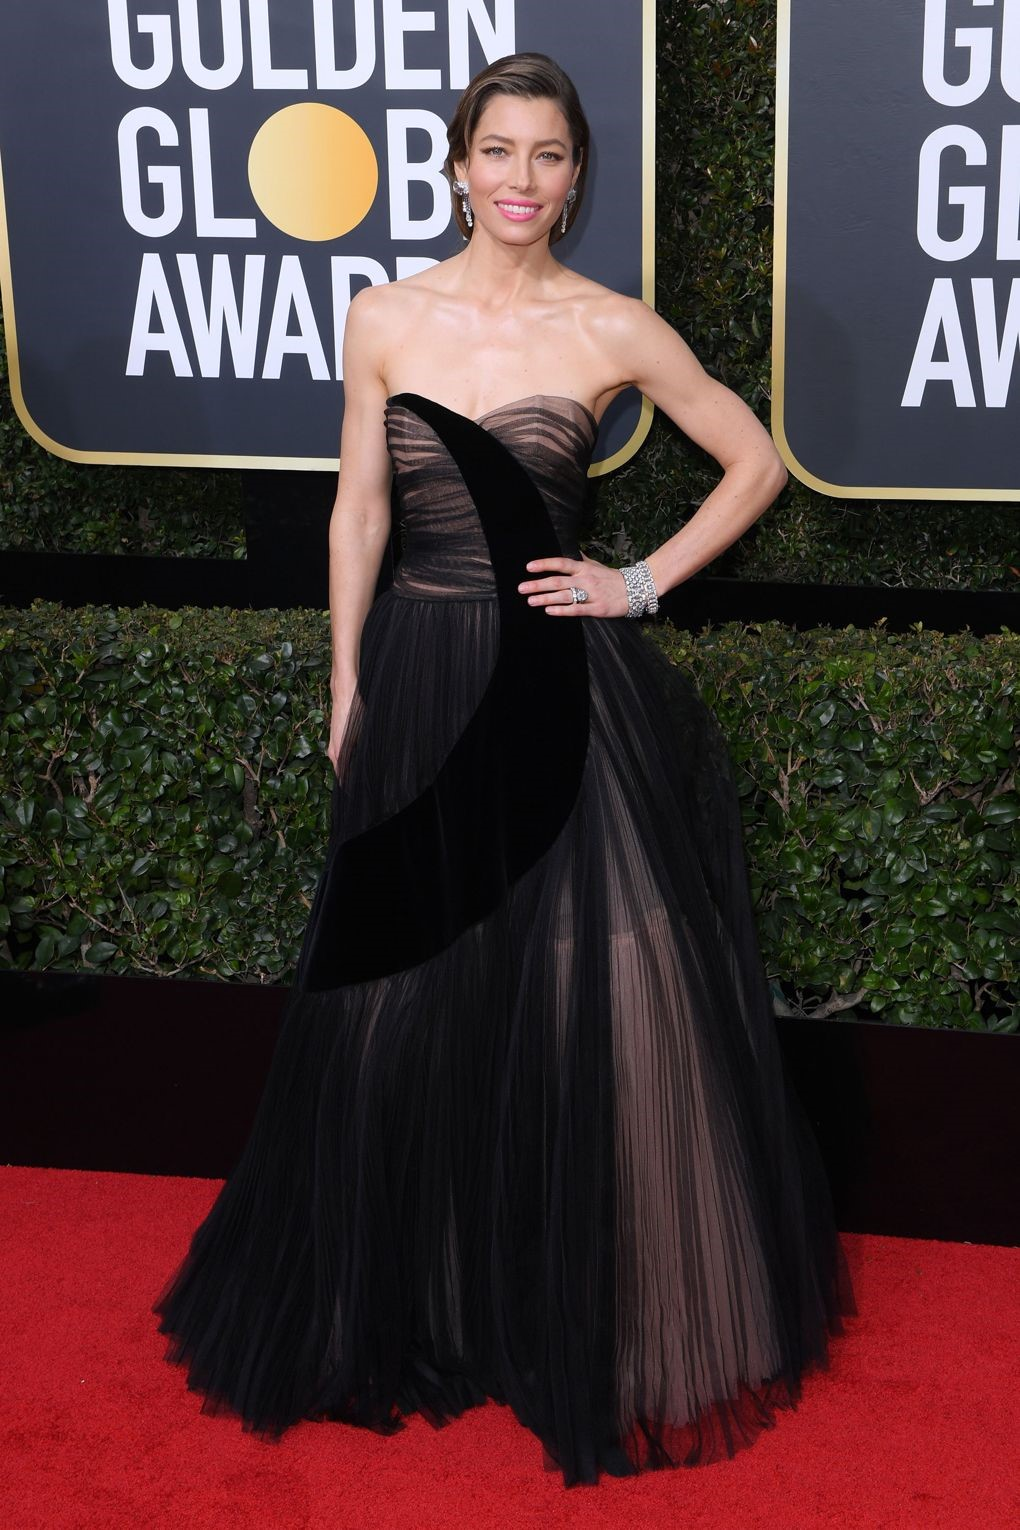 Jessica Biel looked stunning in a Christian Dior gown showing her support for times up movement. golden globes 2018 - 4 - JD's top 13 red carpet looks of Golden Globes 2018